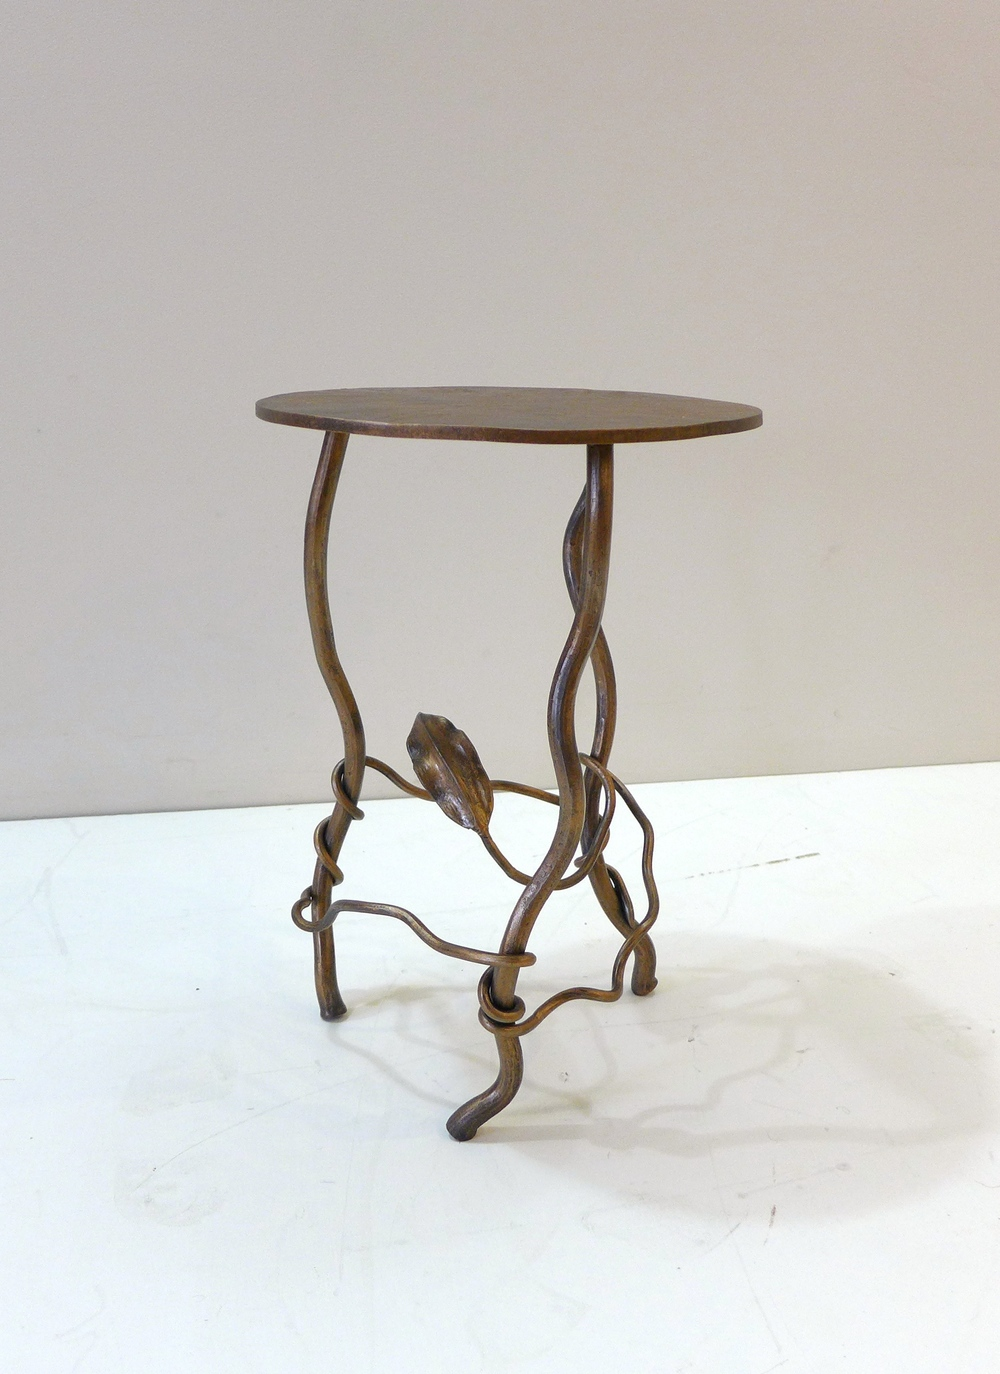 Painted steel single disc side table with leaf and vine